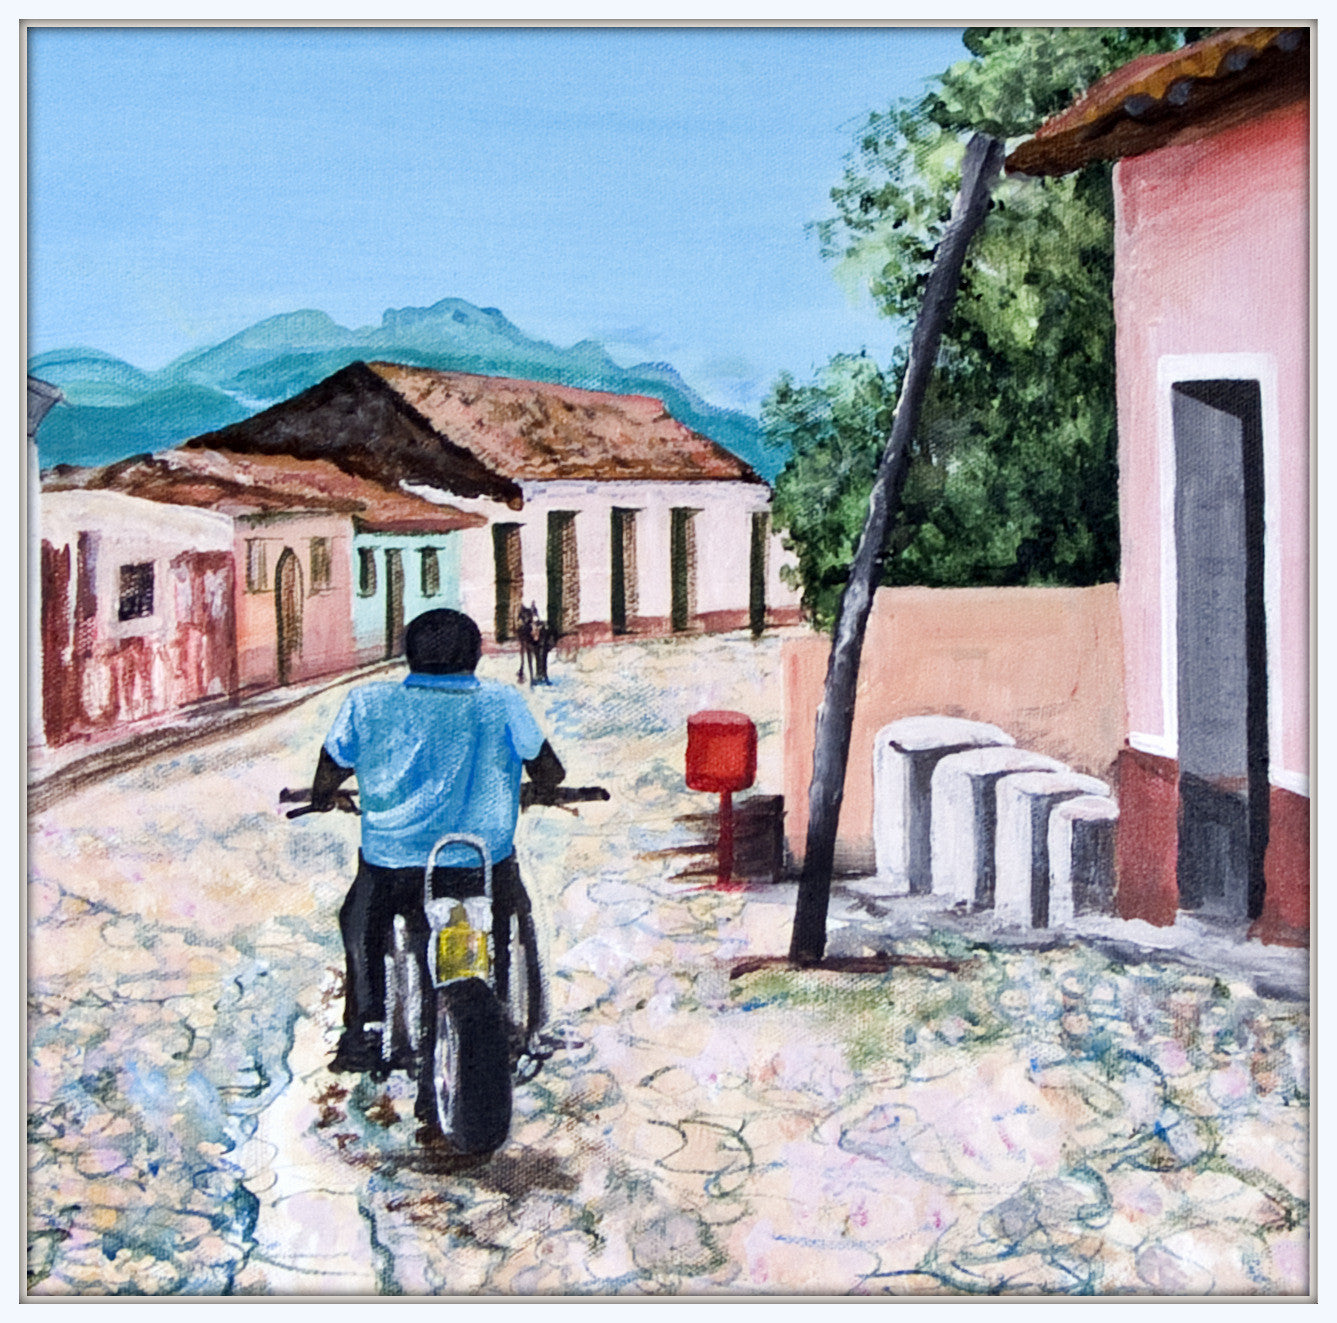 Man on Motorbike in Trinidad, Cuba  Smart Deco Homeware Lighting and Art by Jacqueline hammond